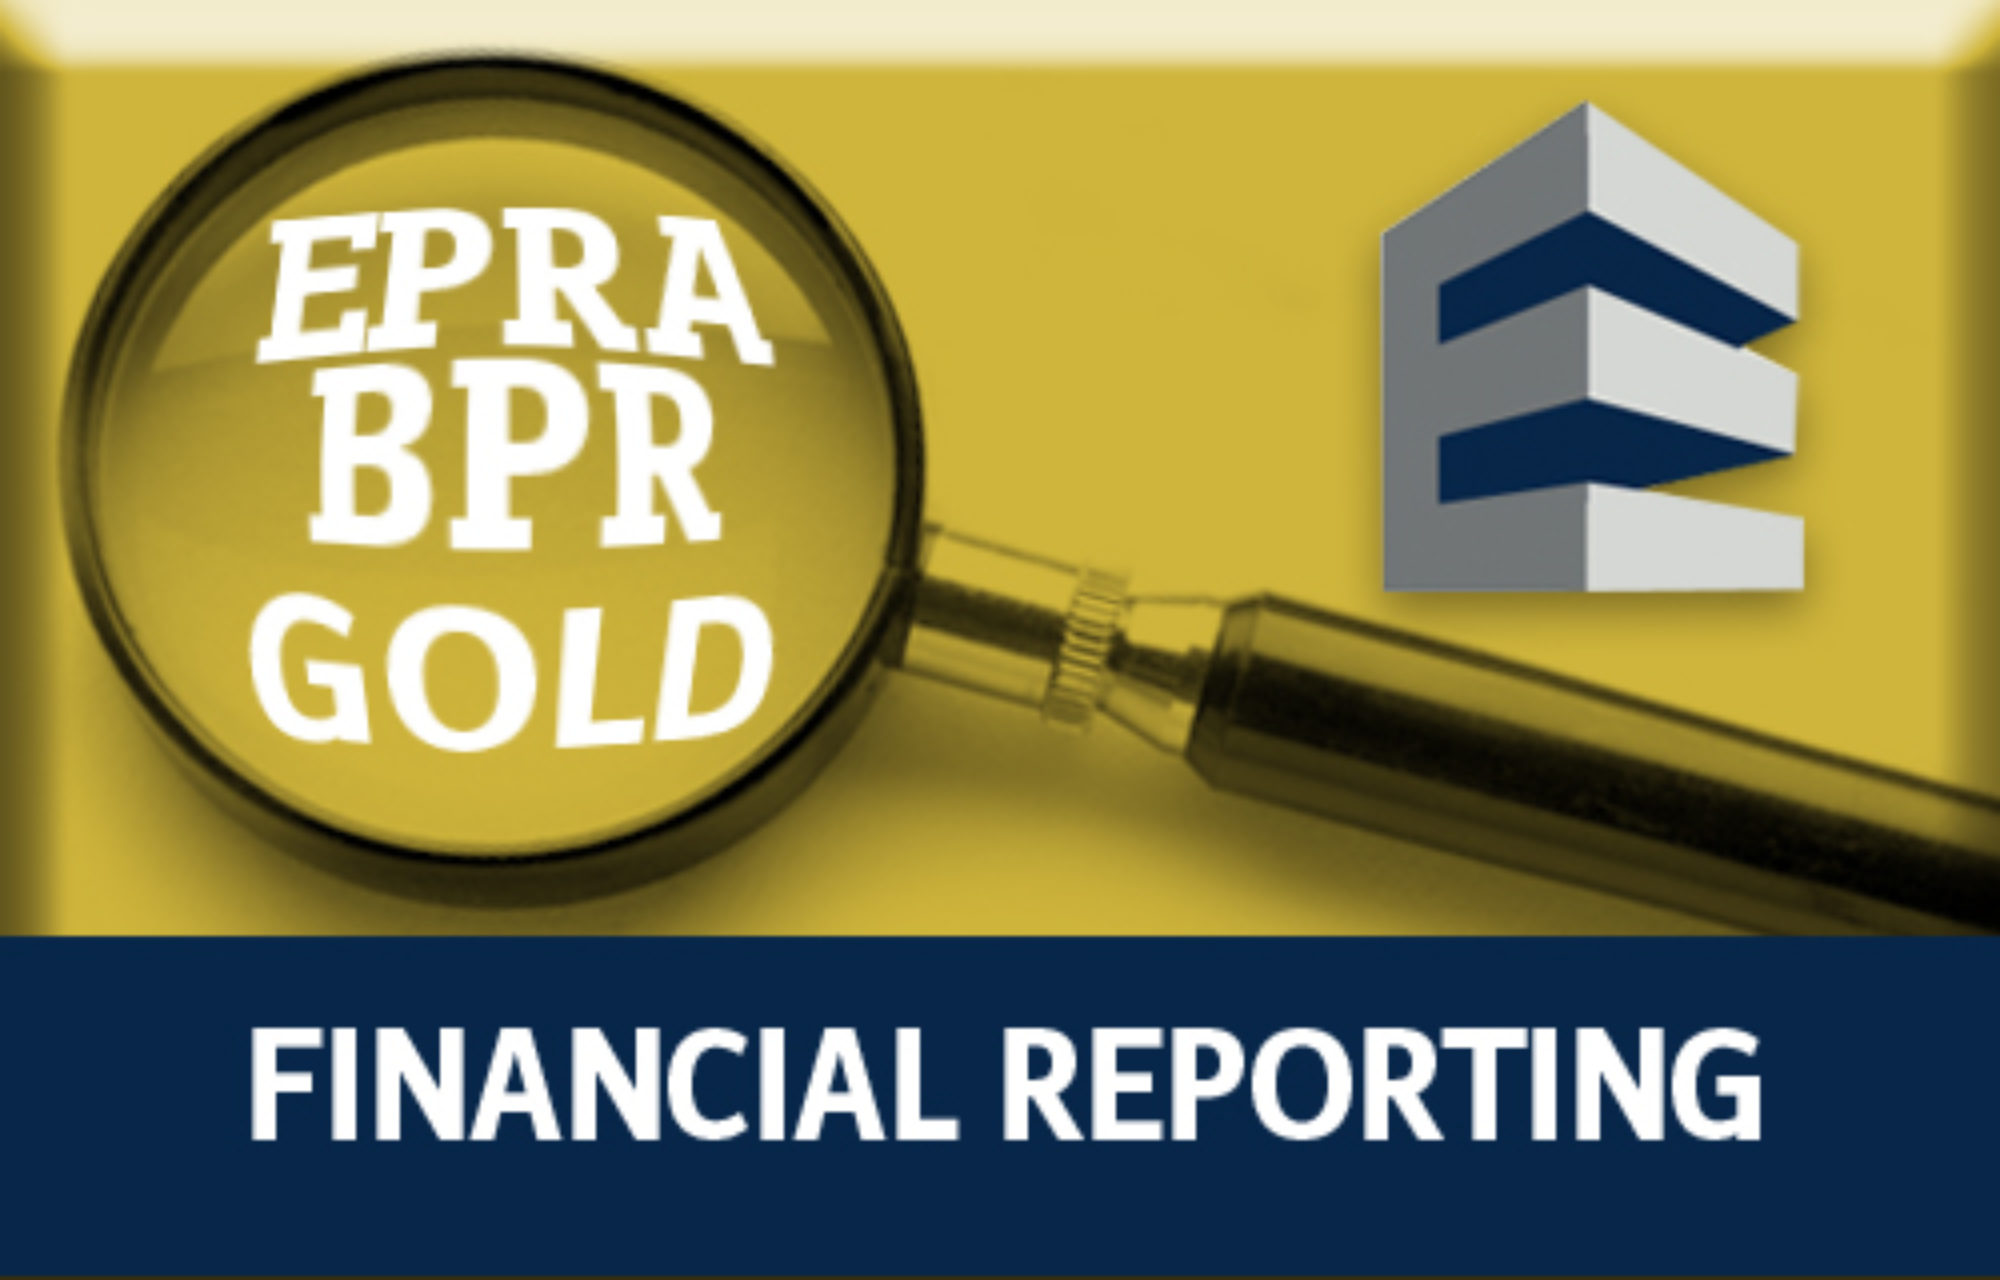 Derwent London wins EPRA Gold award for its 2012 Annual Report & Accounts